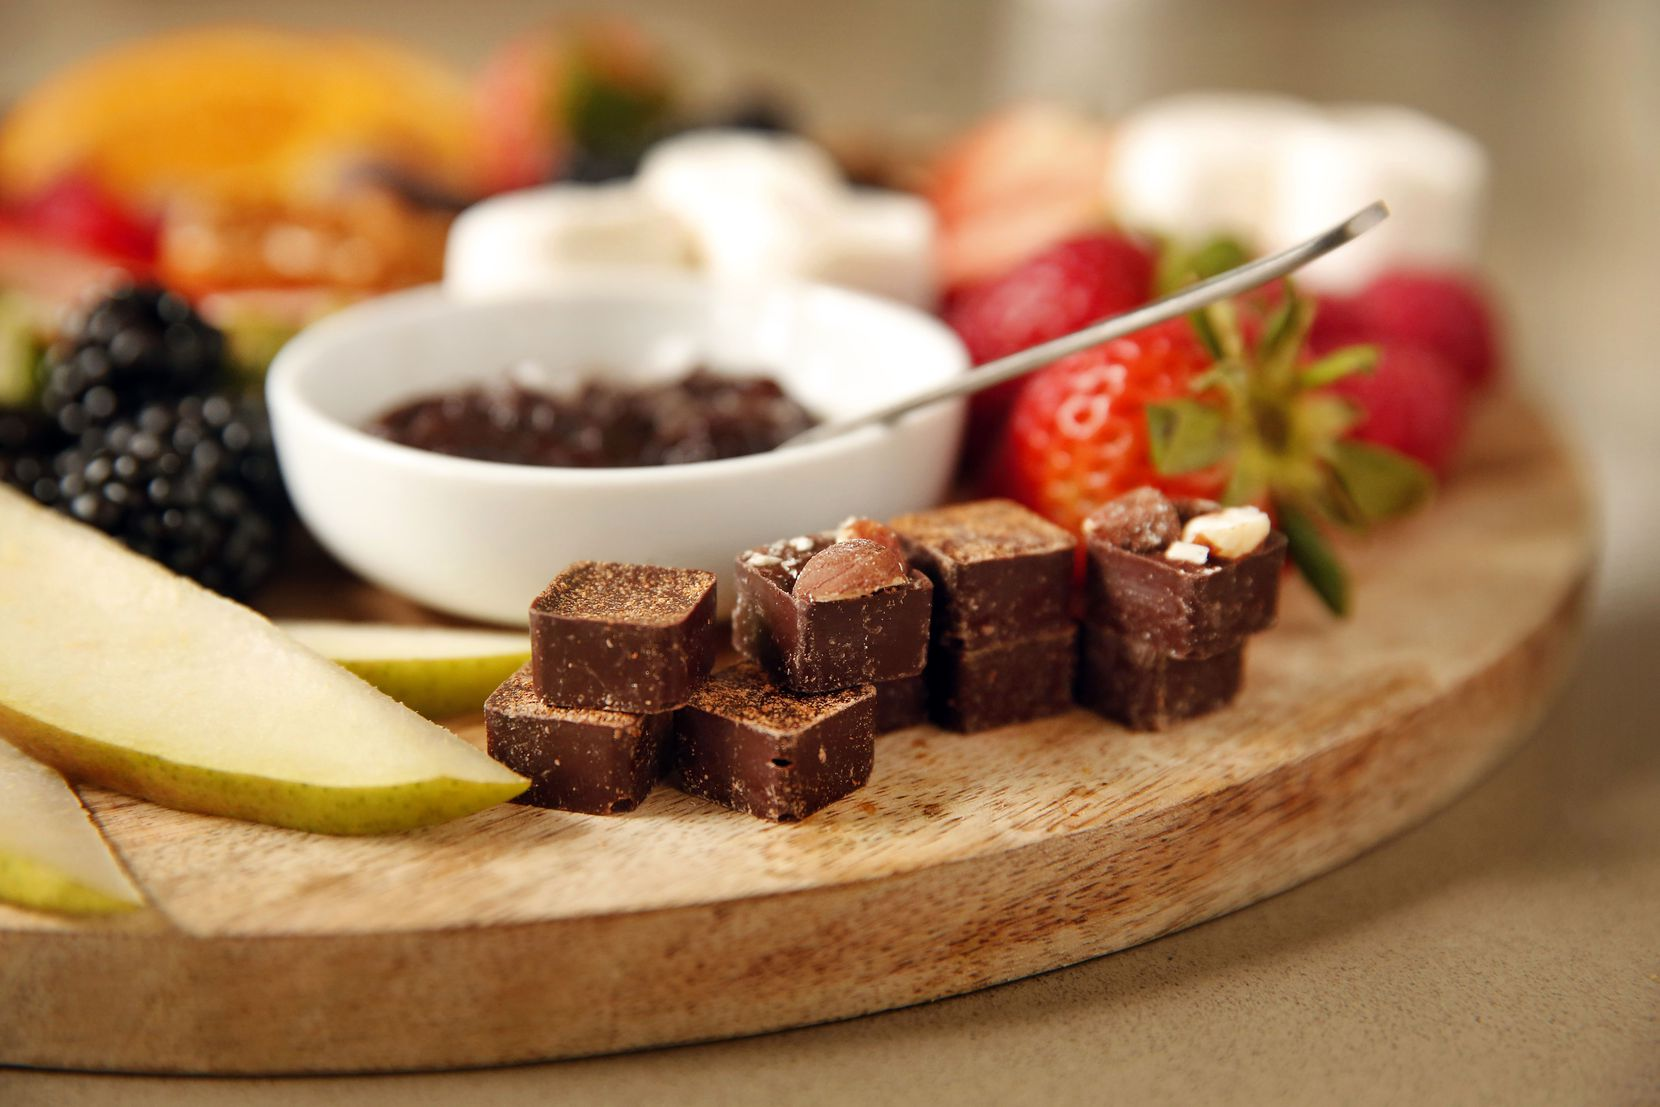 Deric and Brooklynn Cahill plan on selling a dessert board which includes their vegan chocolates.